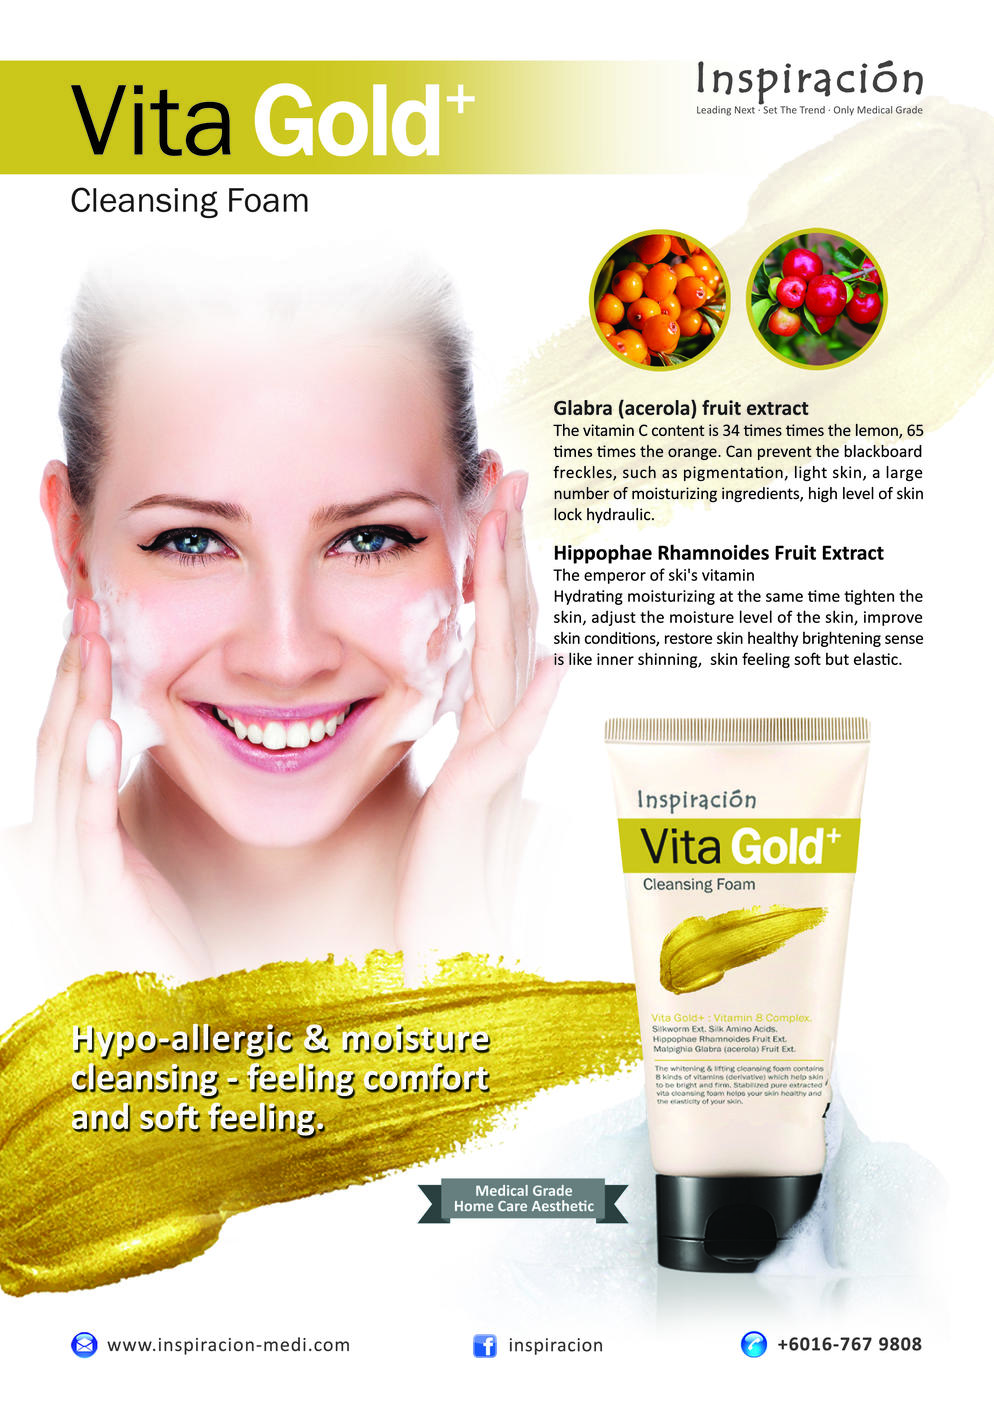 VITA GOLD+ Cleansing Foam